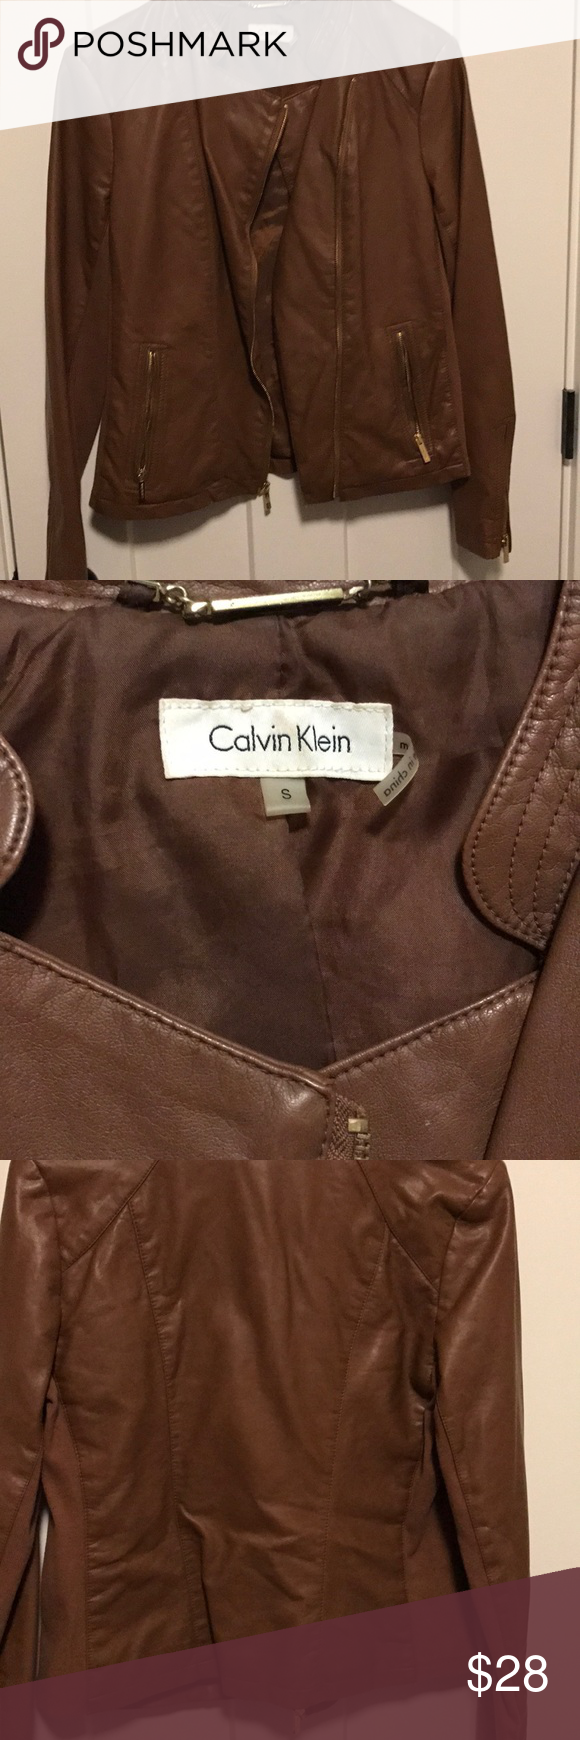 Calvin Klein faux leather jacket! Barely worn! Camel